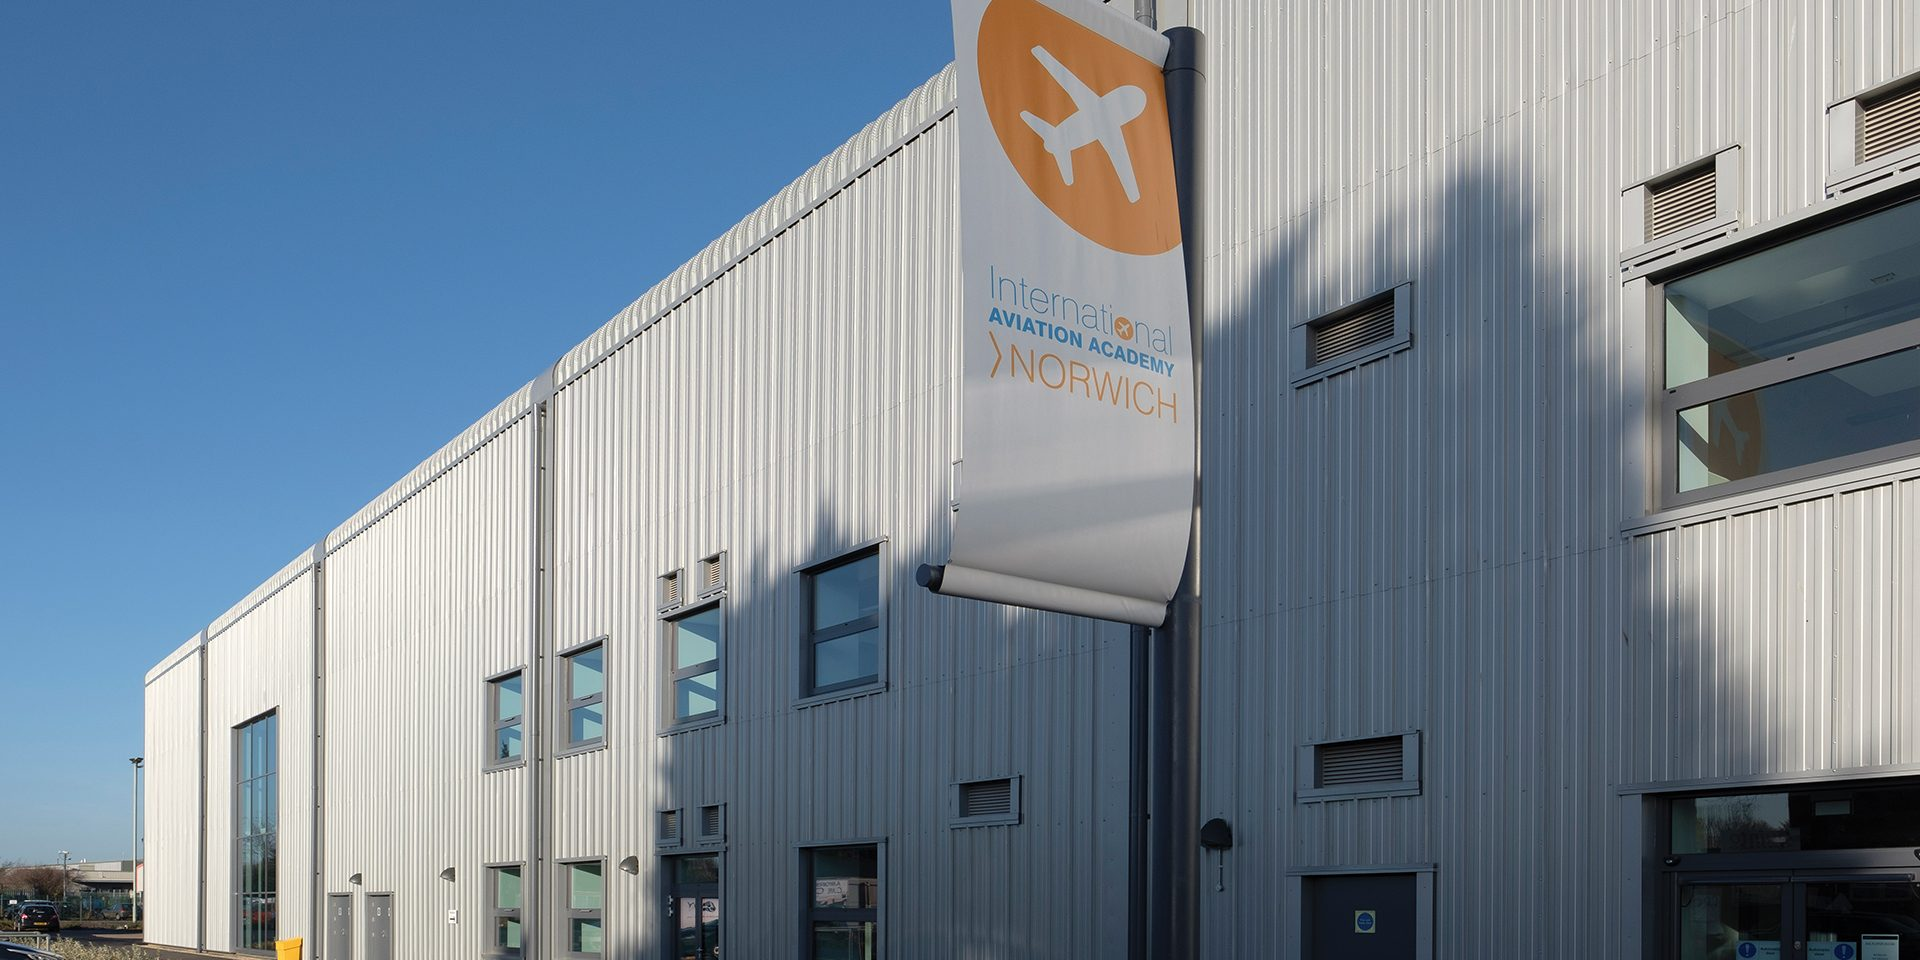 Norwich Aviation Academy